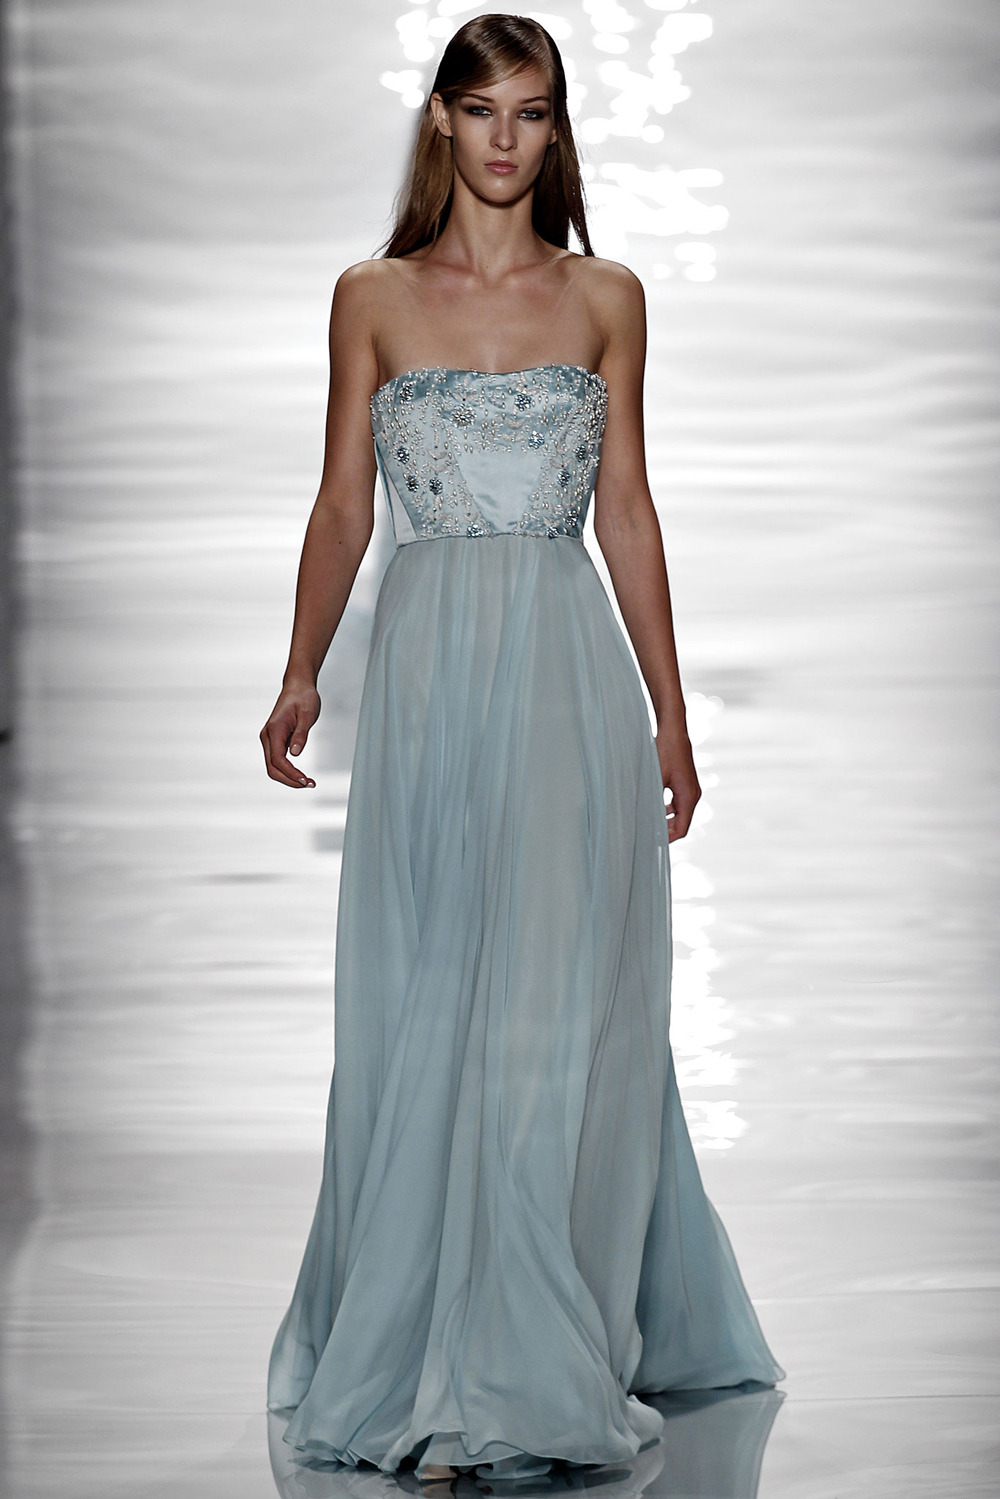 Pantone Colour Report Spring 2015 trends / aquamarine / how to wear aquamarine / outfit ideas / fashion collections S/S 2015 / Reem Acra Spring 2015 / via fashioned by love british fashion blog